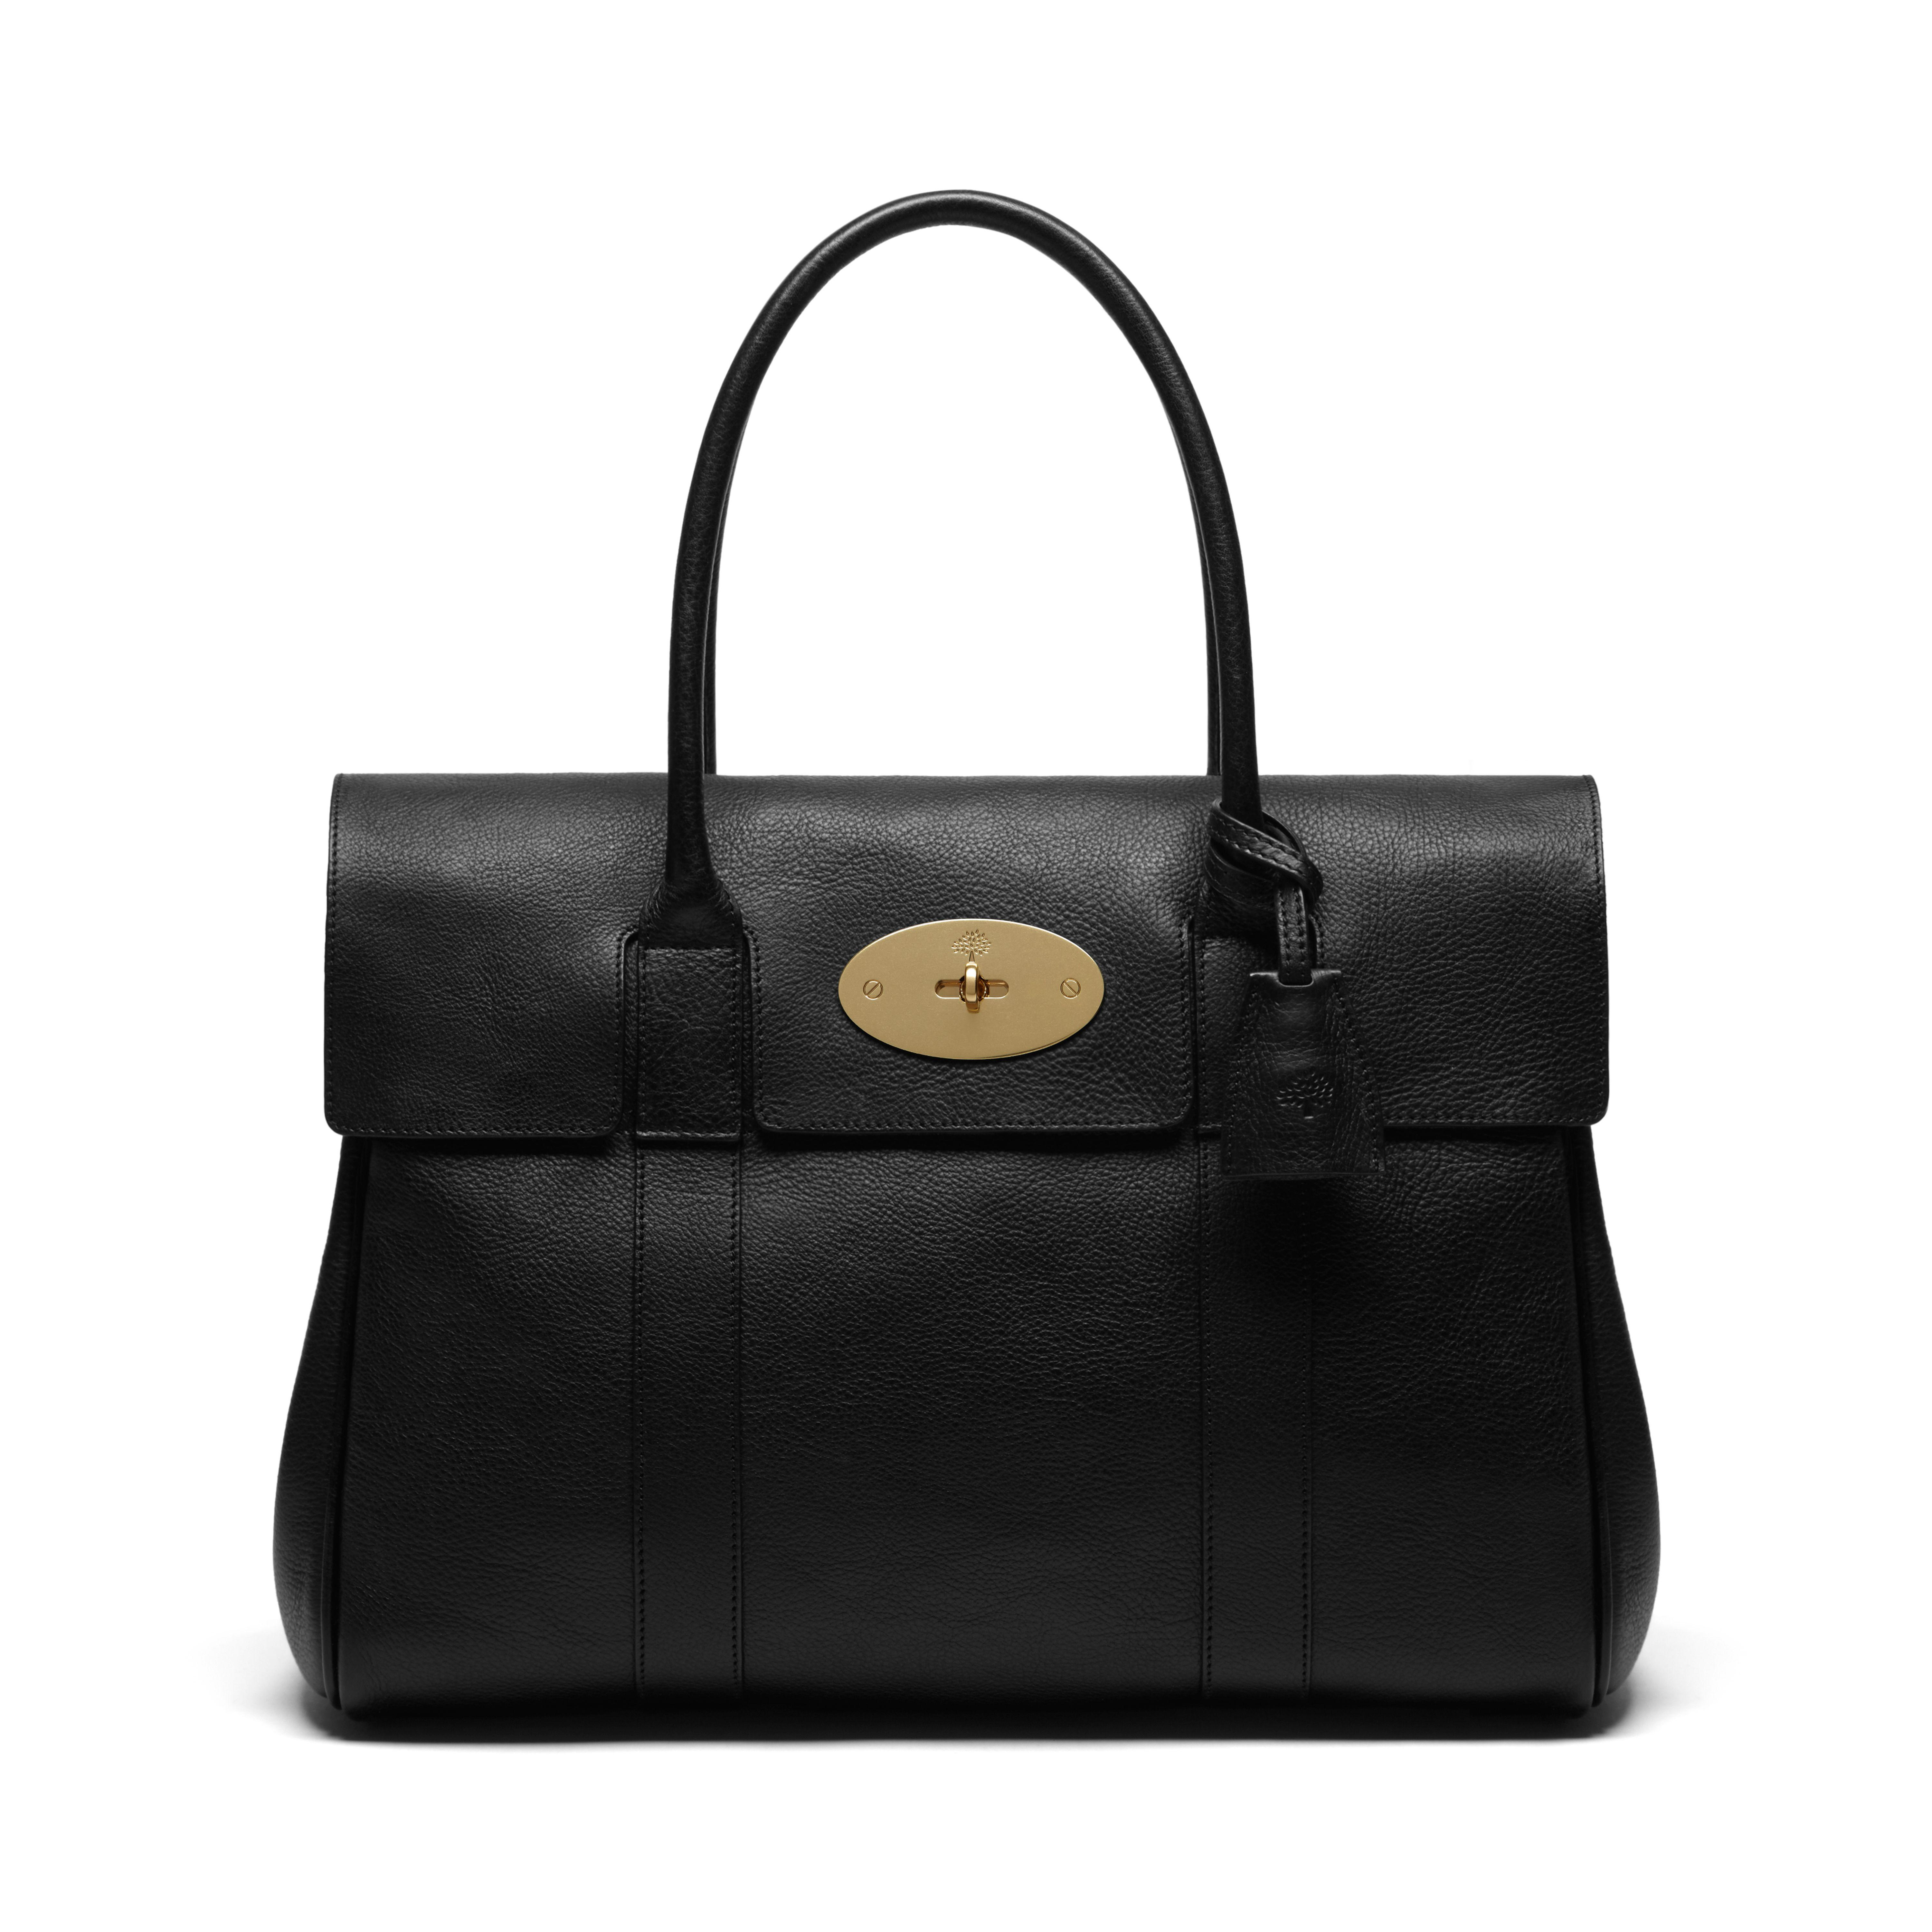 Mulberry Bayswater Leather Bag in Black  01fb7a4a735ef